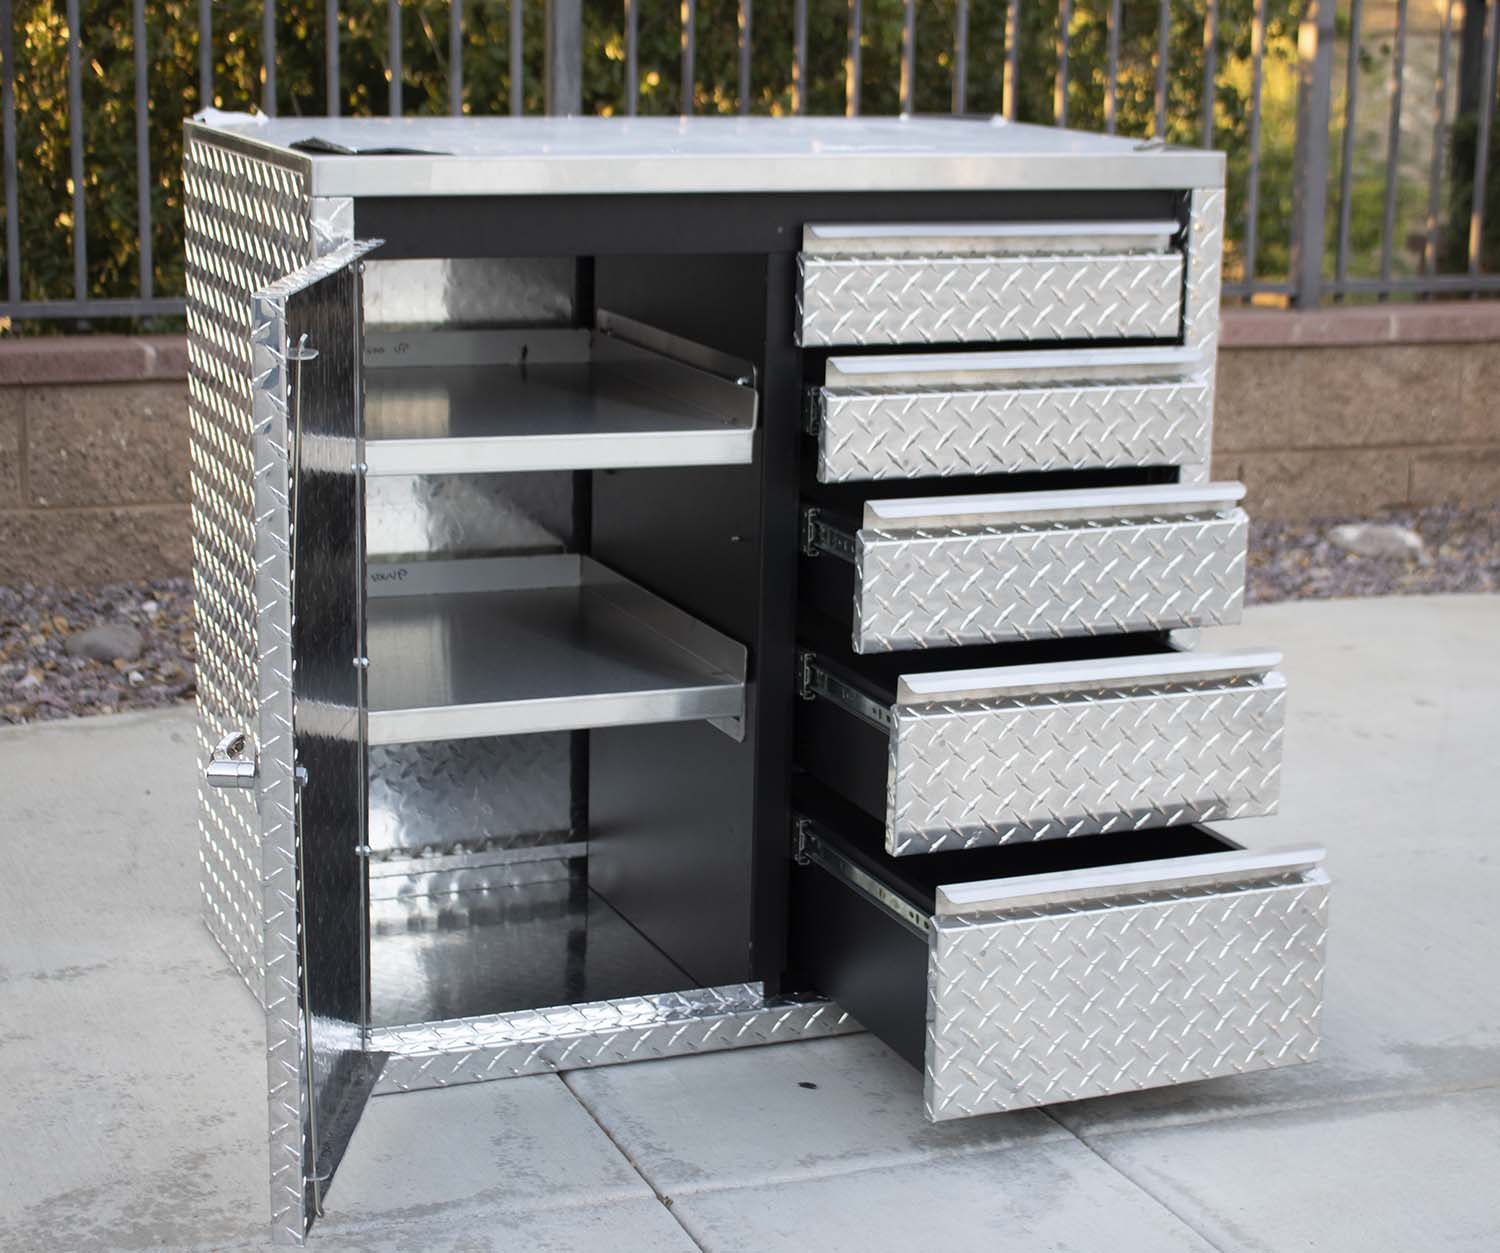 Stainless Steel Shop Carts